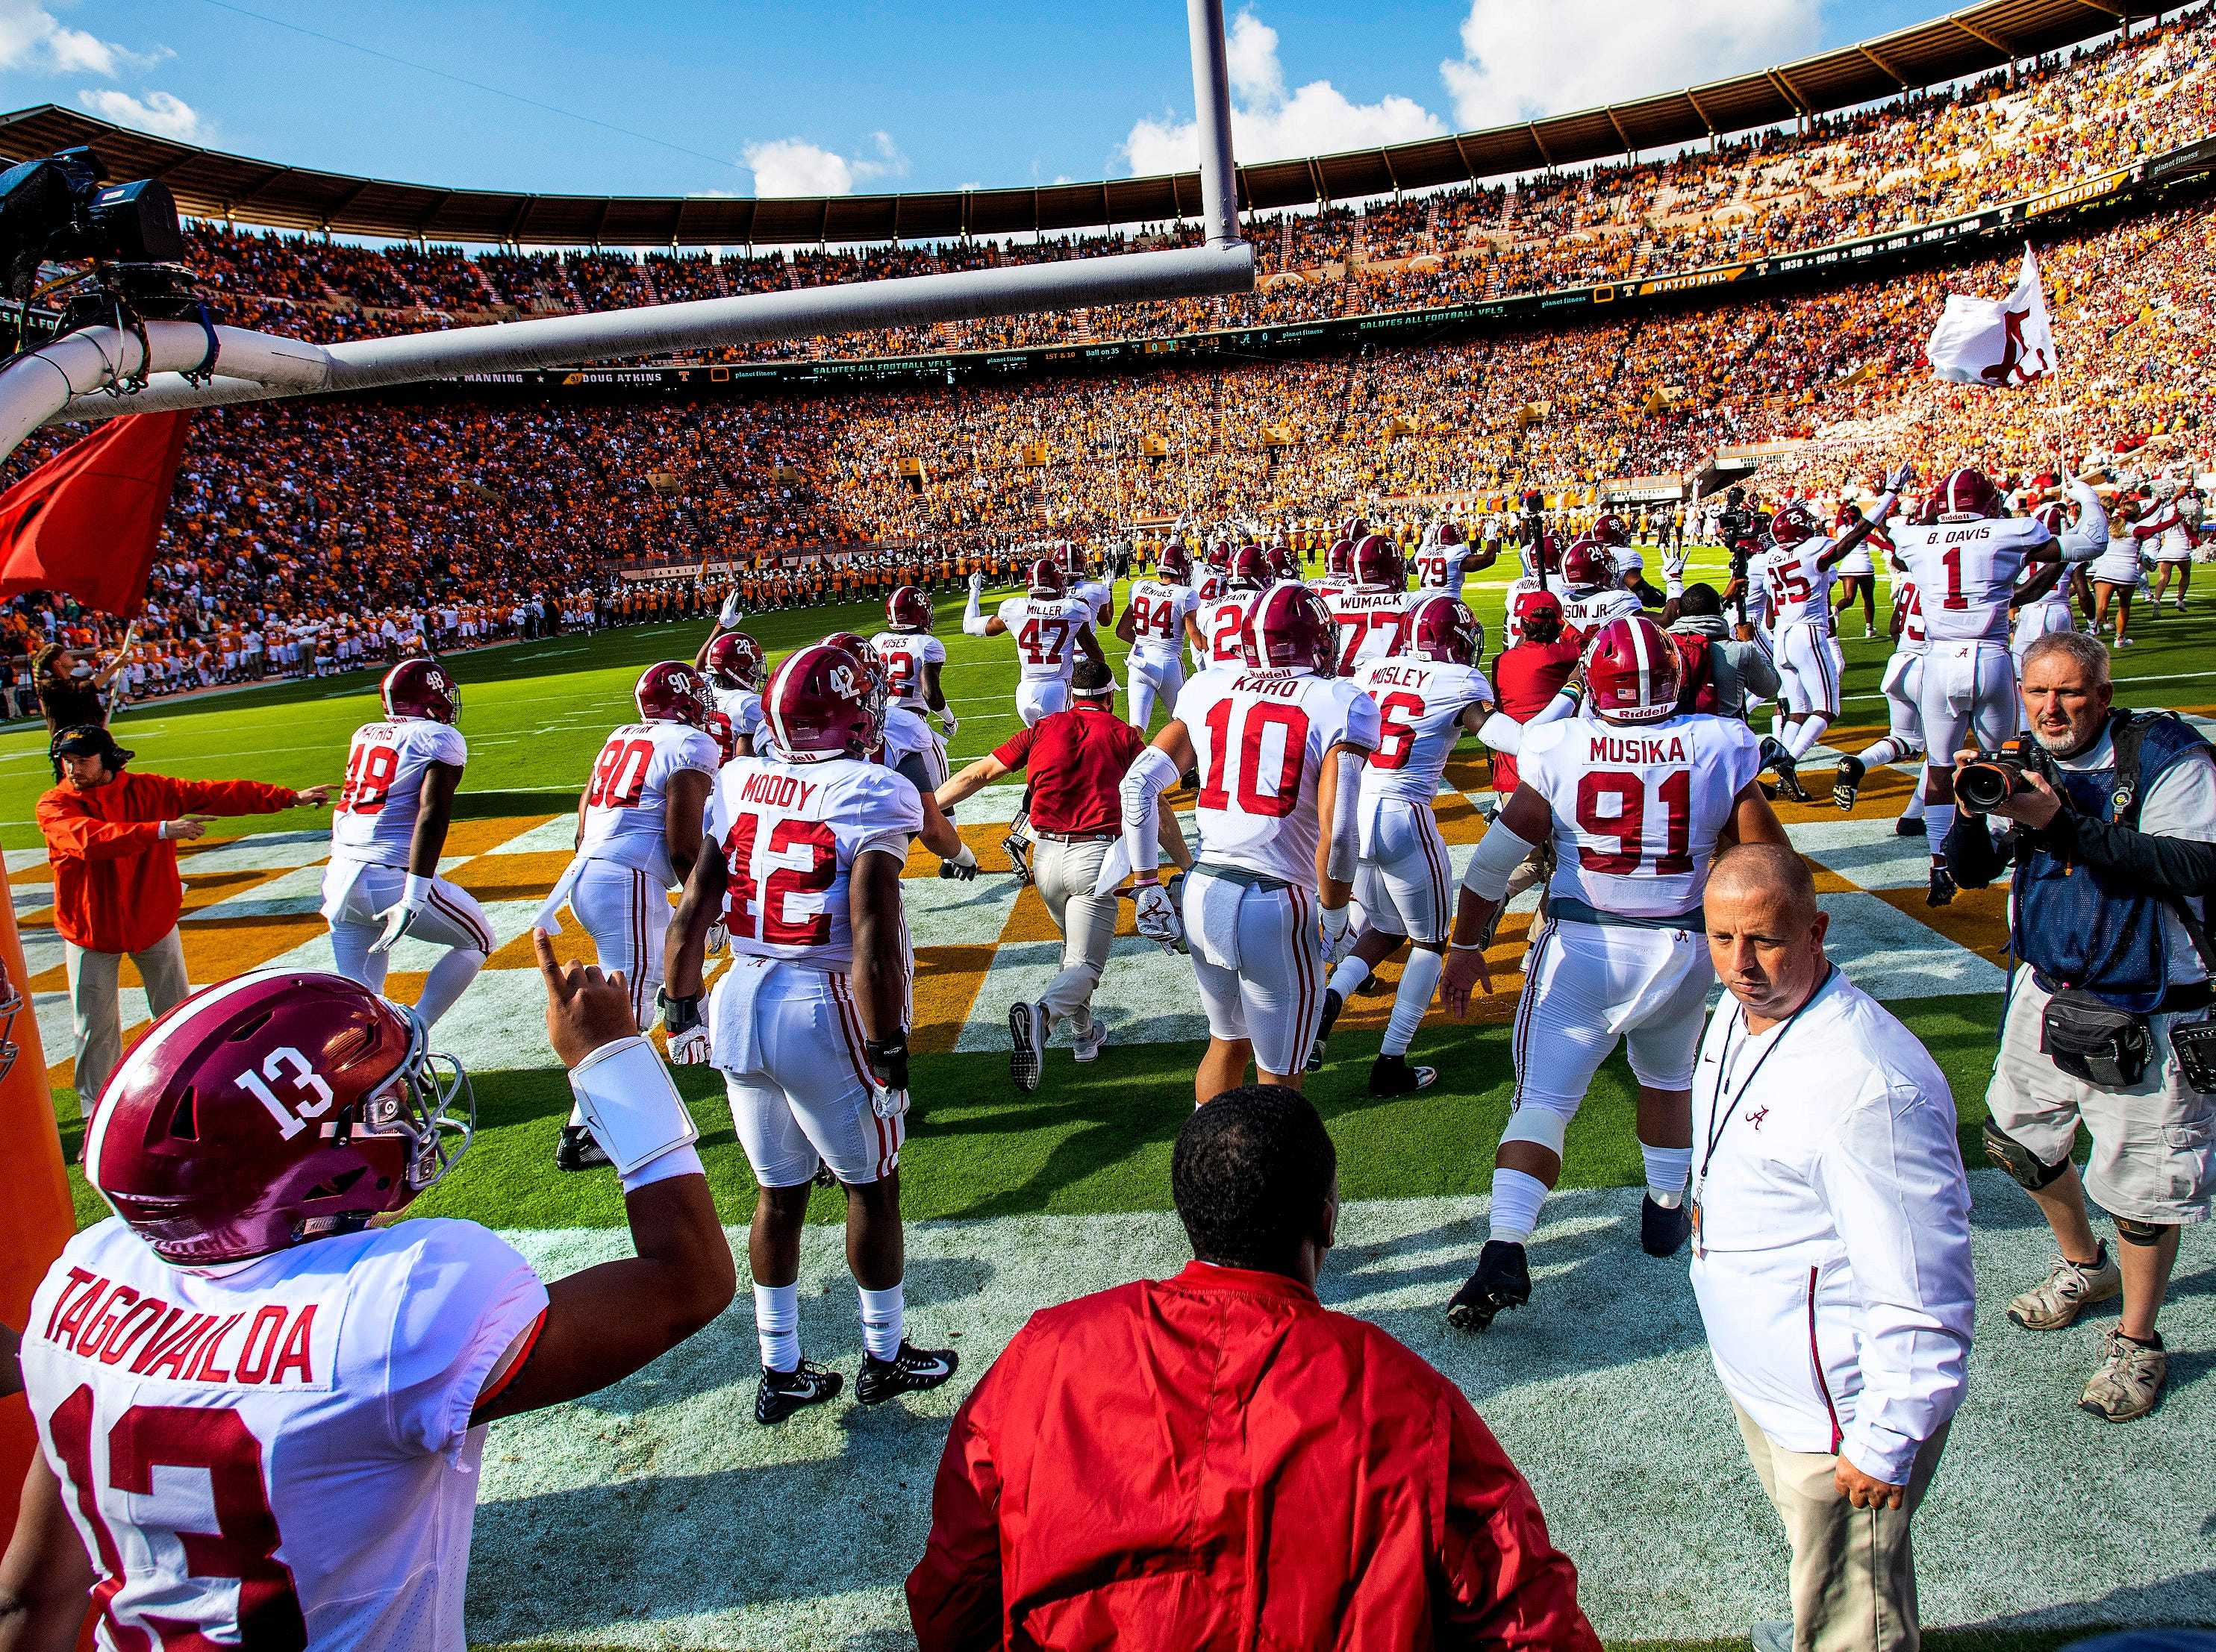 Alabama quarterback Tua Tagovailoa (13) signals number one as Alabama takes the field against Tennessee in first half action at Neyland Stadium in Knoxville, Tn., on Saturday October 20, 2018.